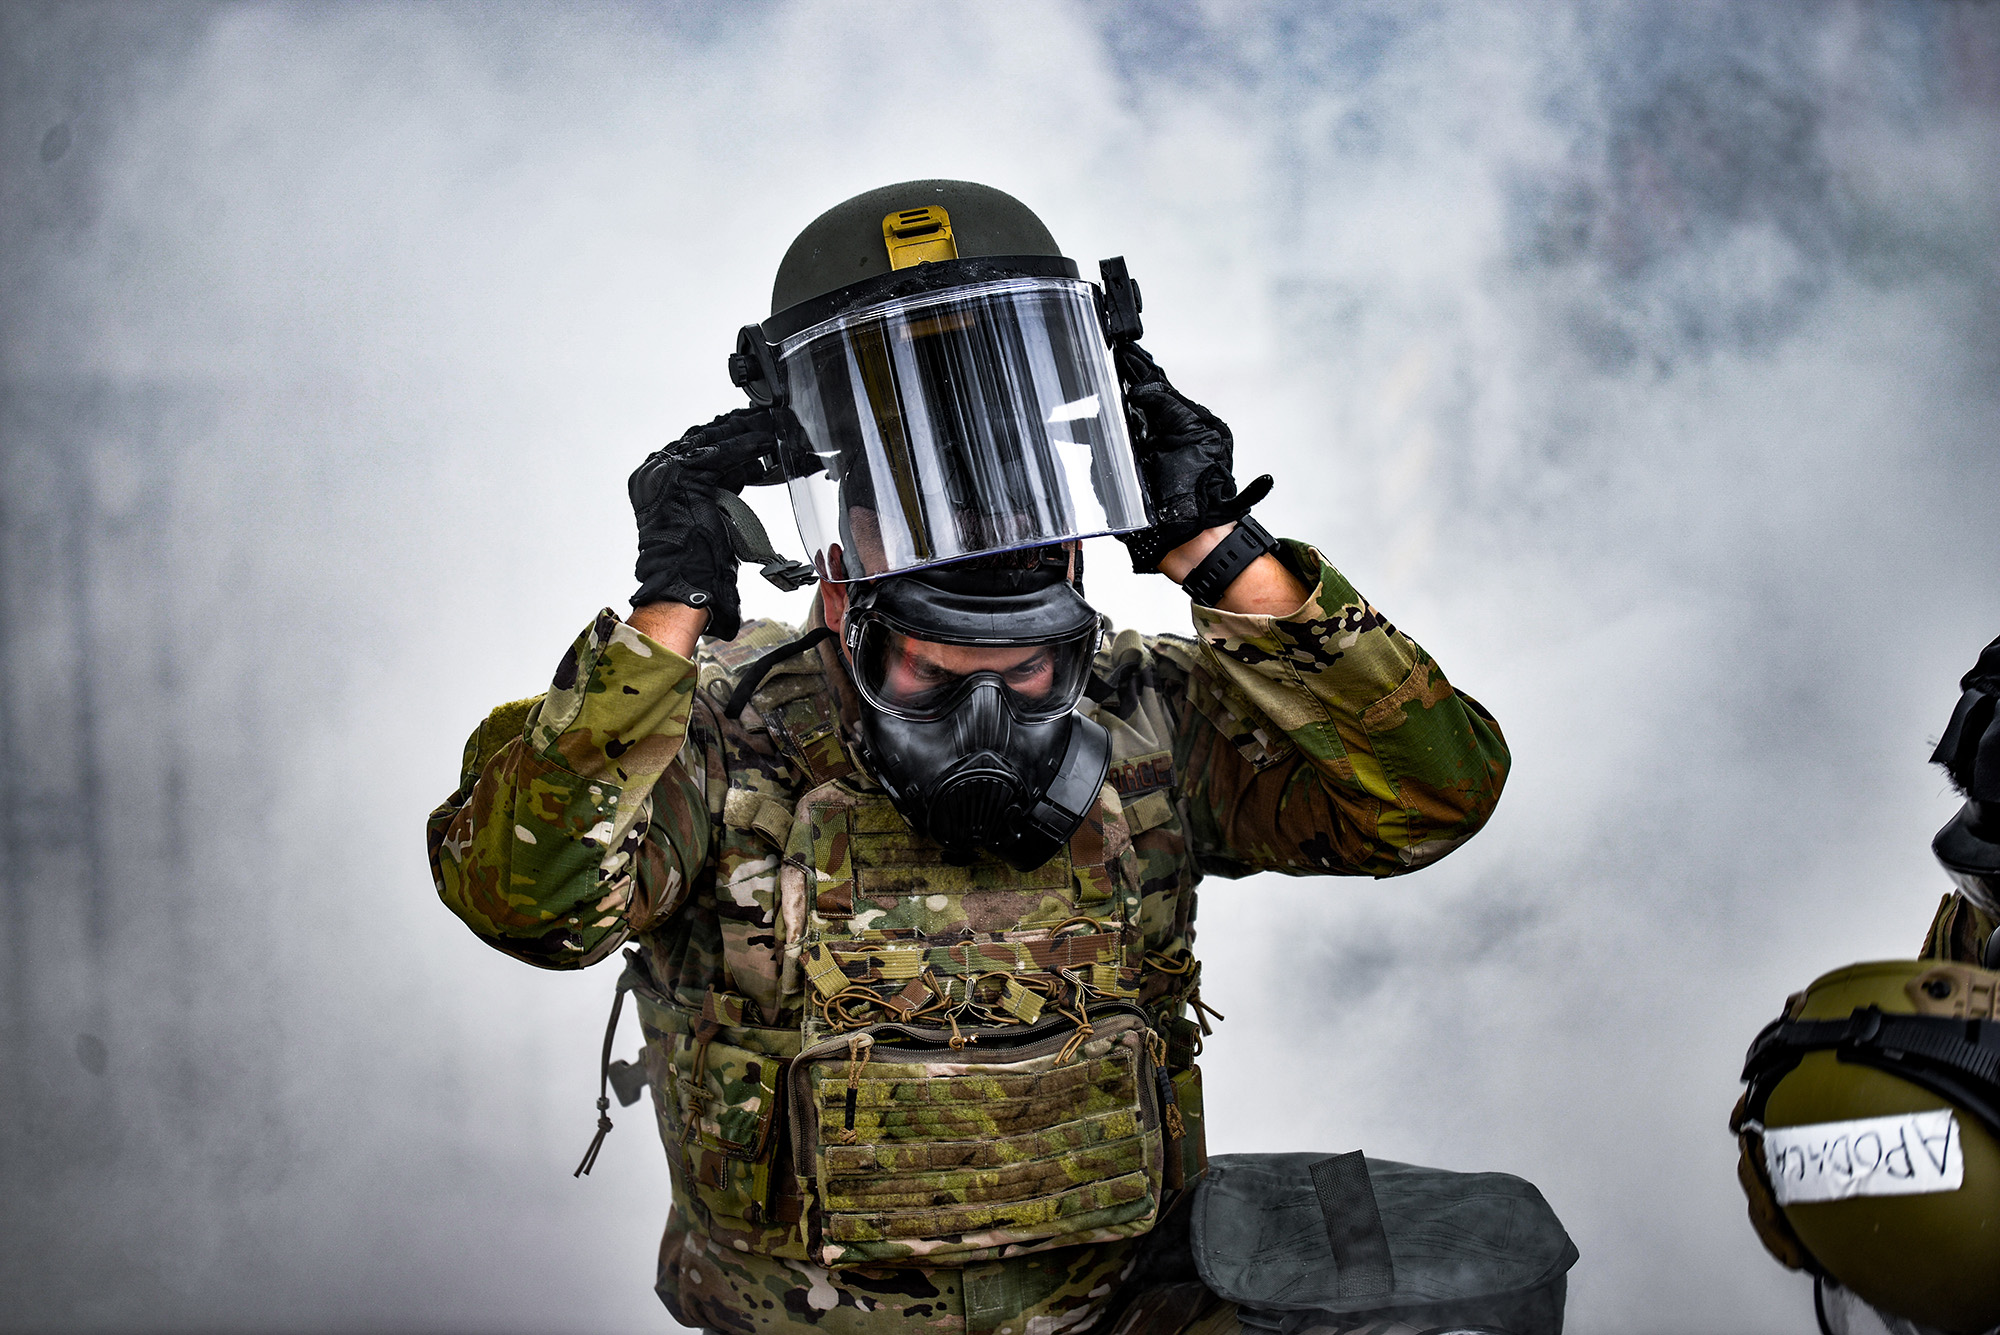 Tech. Sgt. Estevan Jojola puts on his face shield during a training exercise in Albuquerque, N.M., Aug. 17, 2020. (Senior Airman Ian Beckley/Air Force)